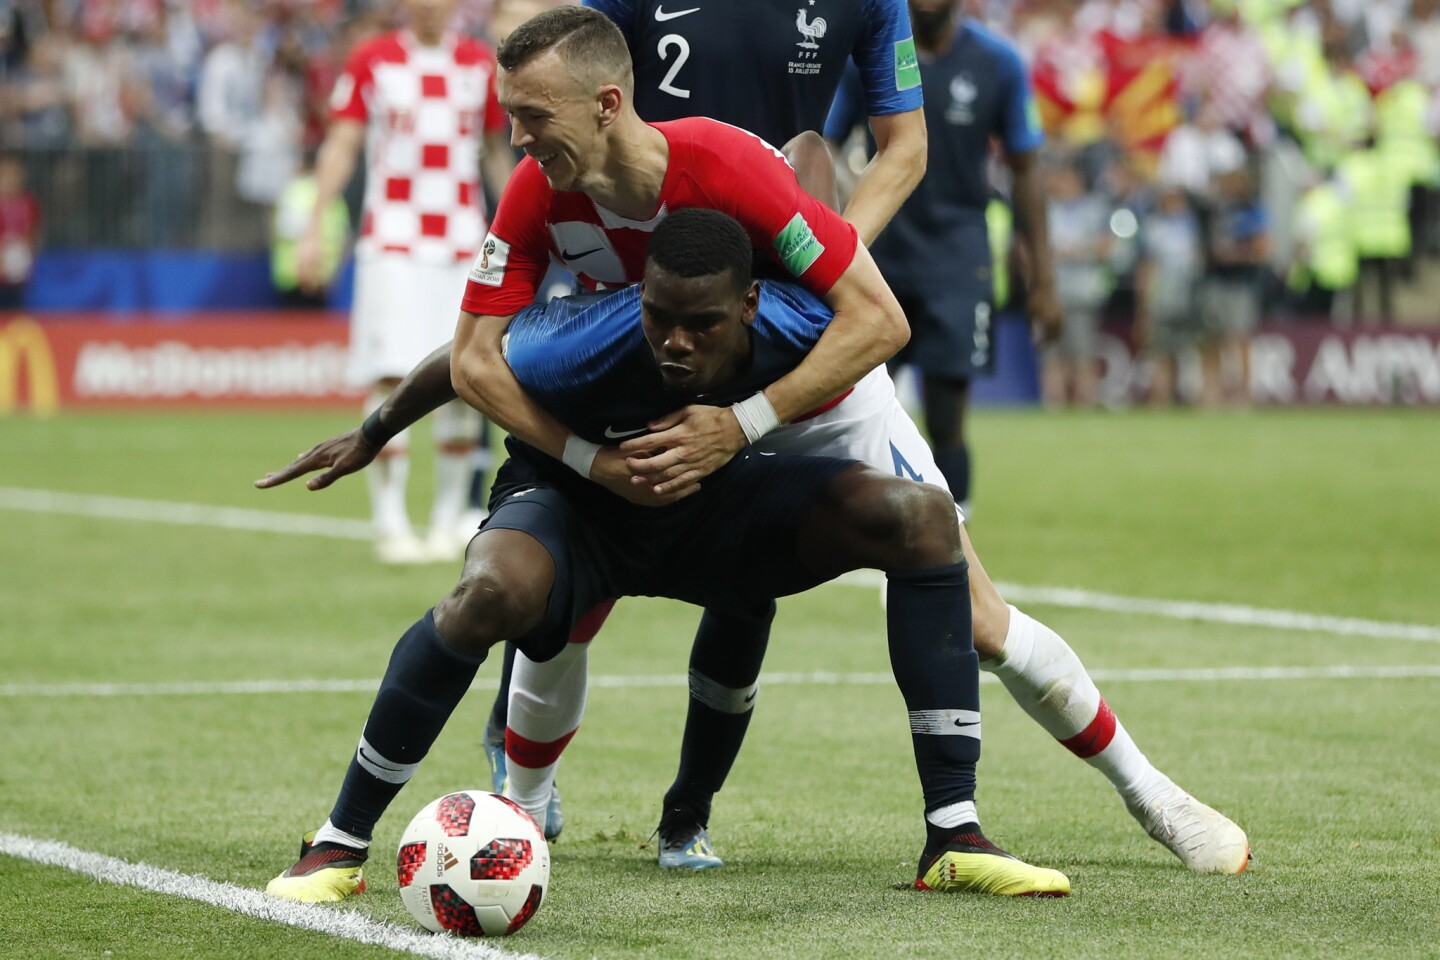 Croatia's Ivan Perisic and France's Paul Pogba battle for the ball during the final match between France and Croatia at the 2018 soccer World Cup in the Luzhniki Stadium in Moscow, Russia, Sunday, July 15, 2018.